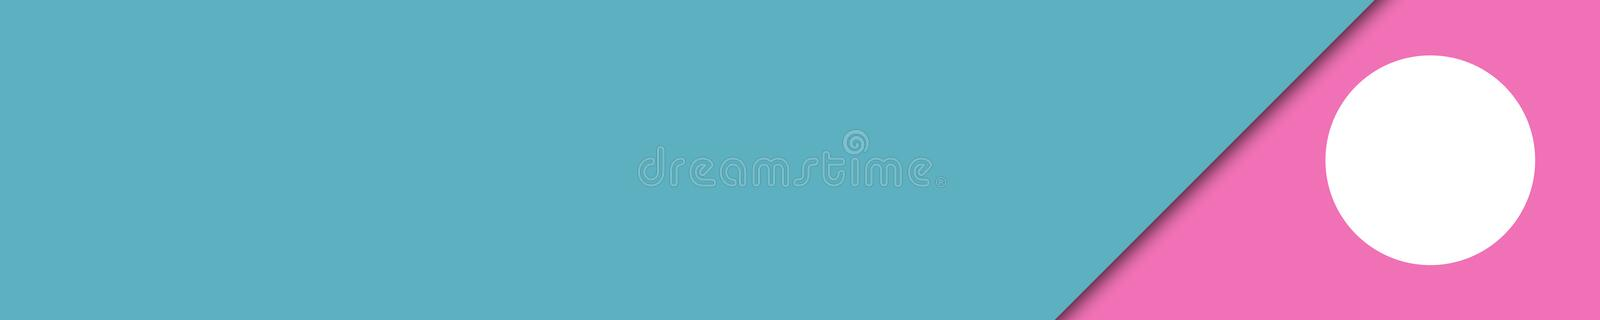 Elegant banner turquoise and pink colors for website stock images